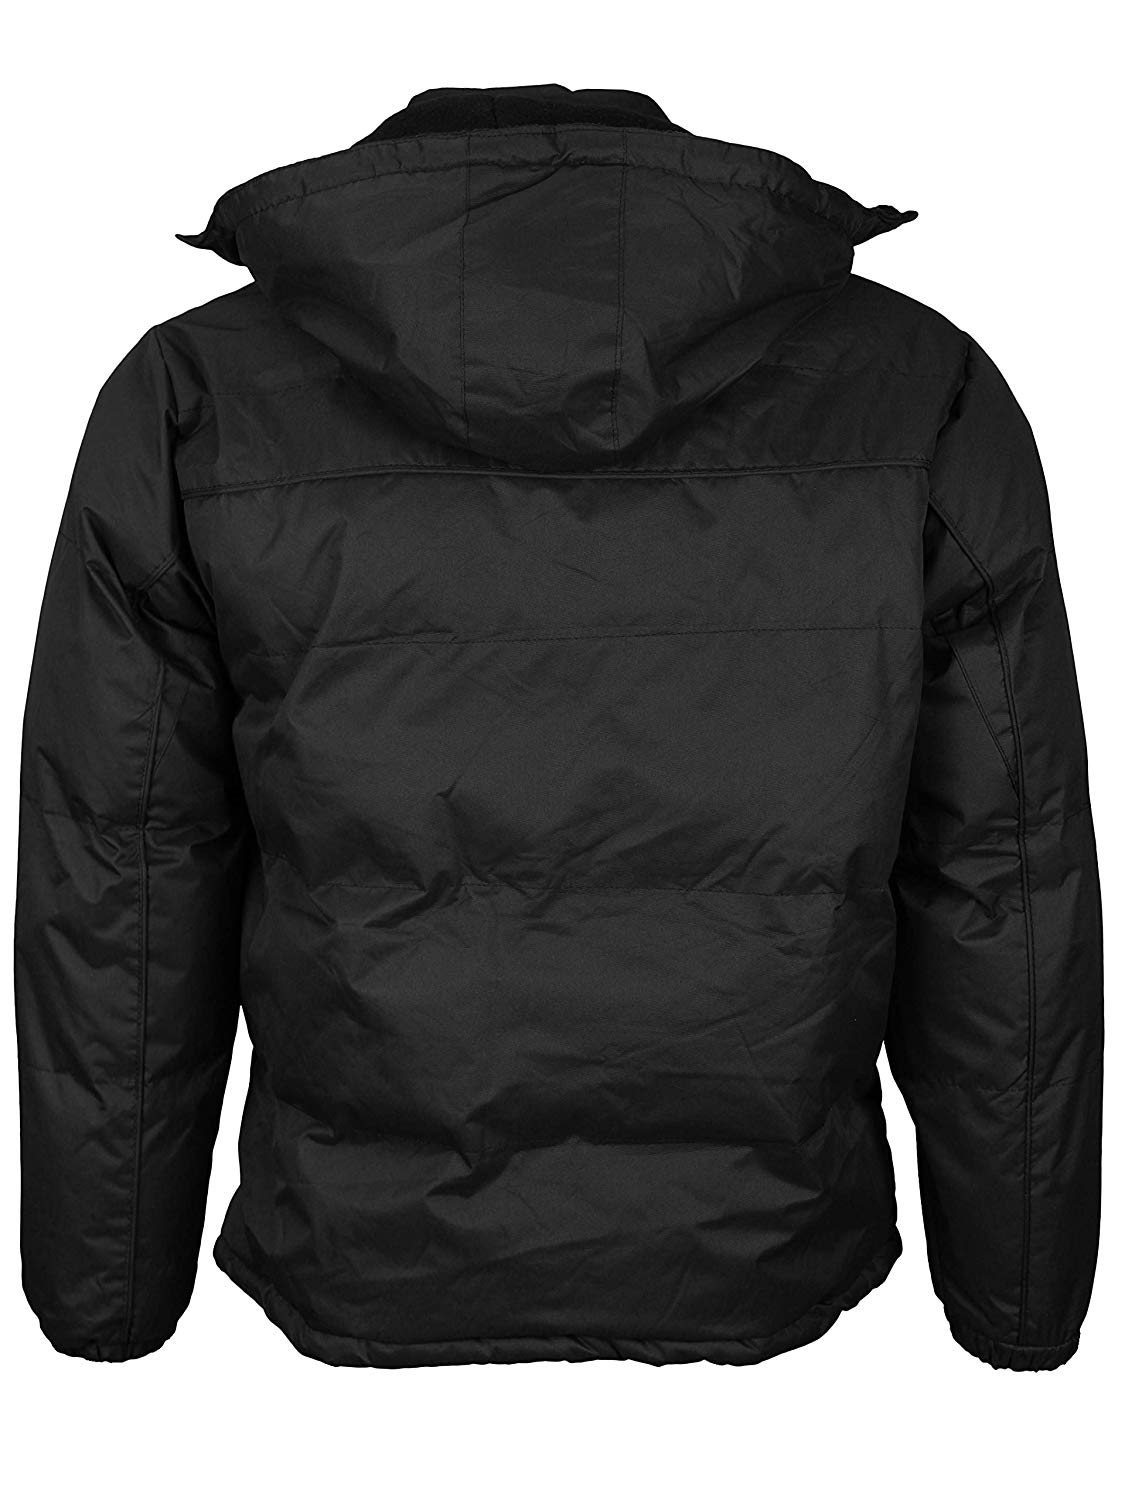 Men/'s Heavyweight Insulated Lined Jacket with Removable Hood BIGBEAR